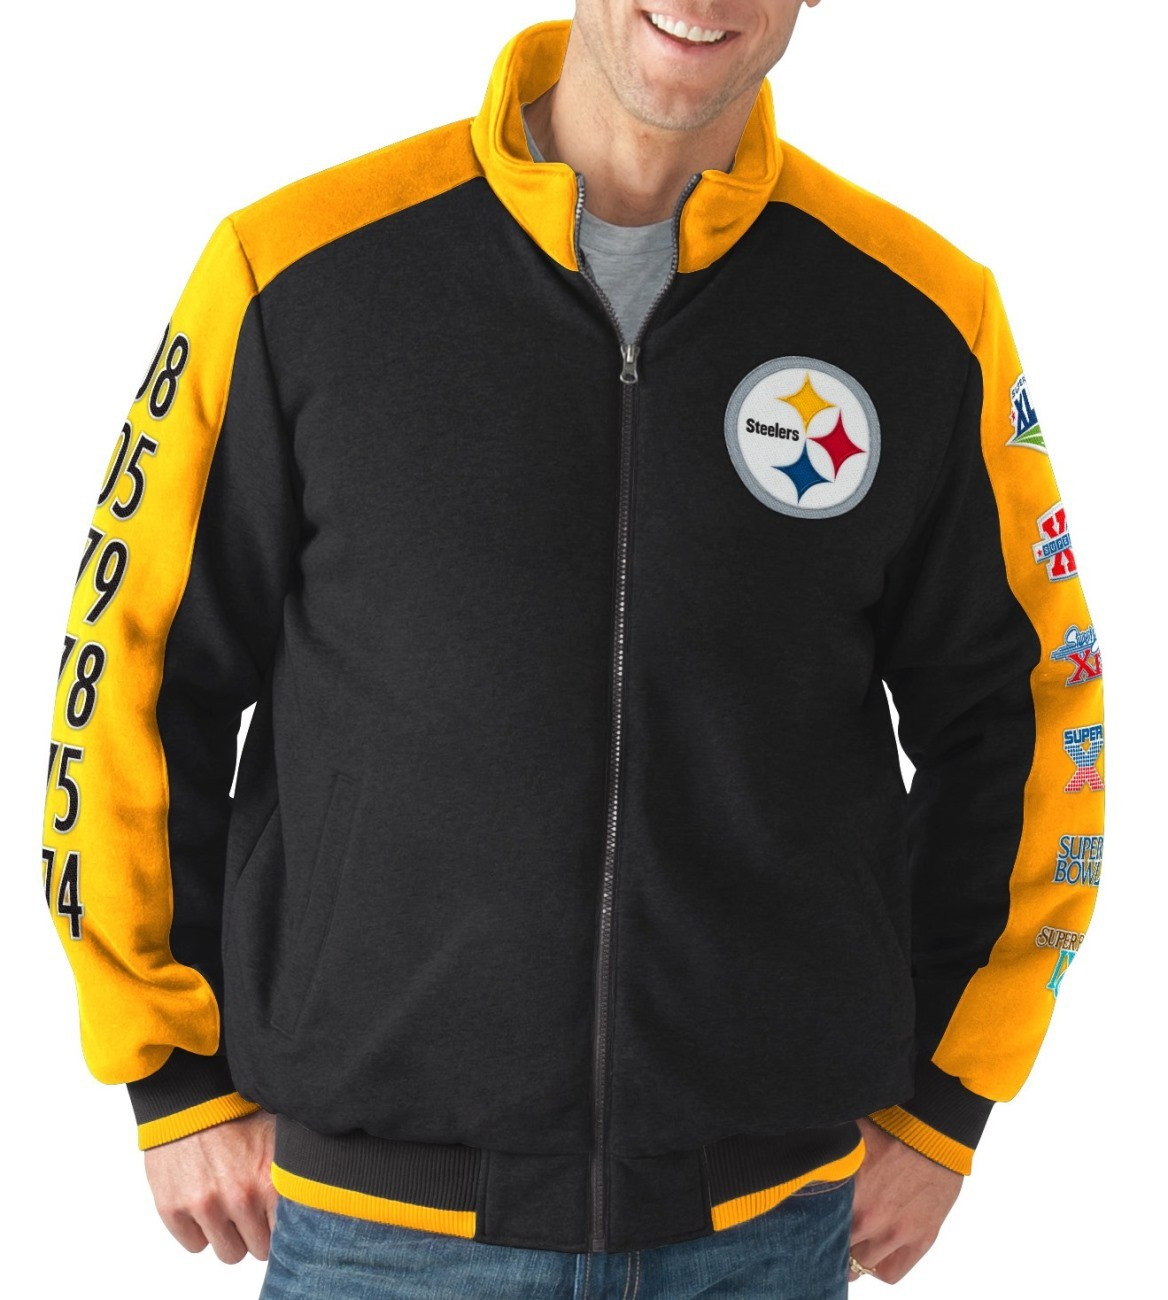 79dae8d9 Youth Steelers Varsity Jacket Related Keywords & Suggestions - Youth ...